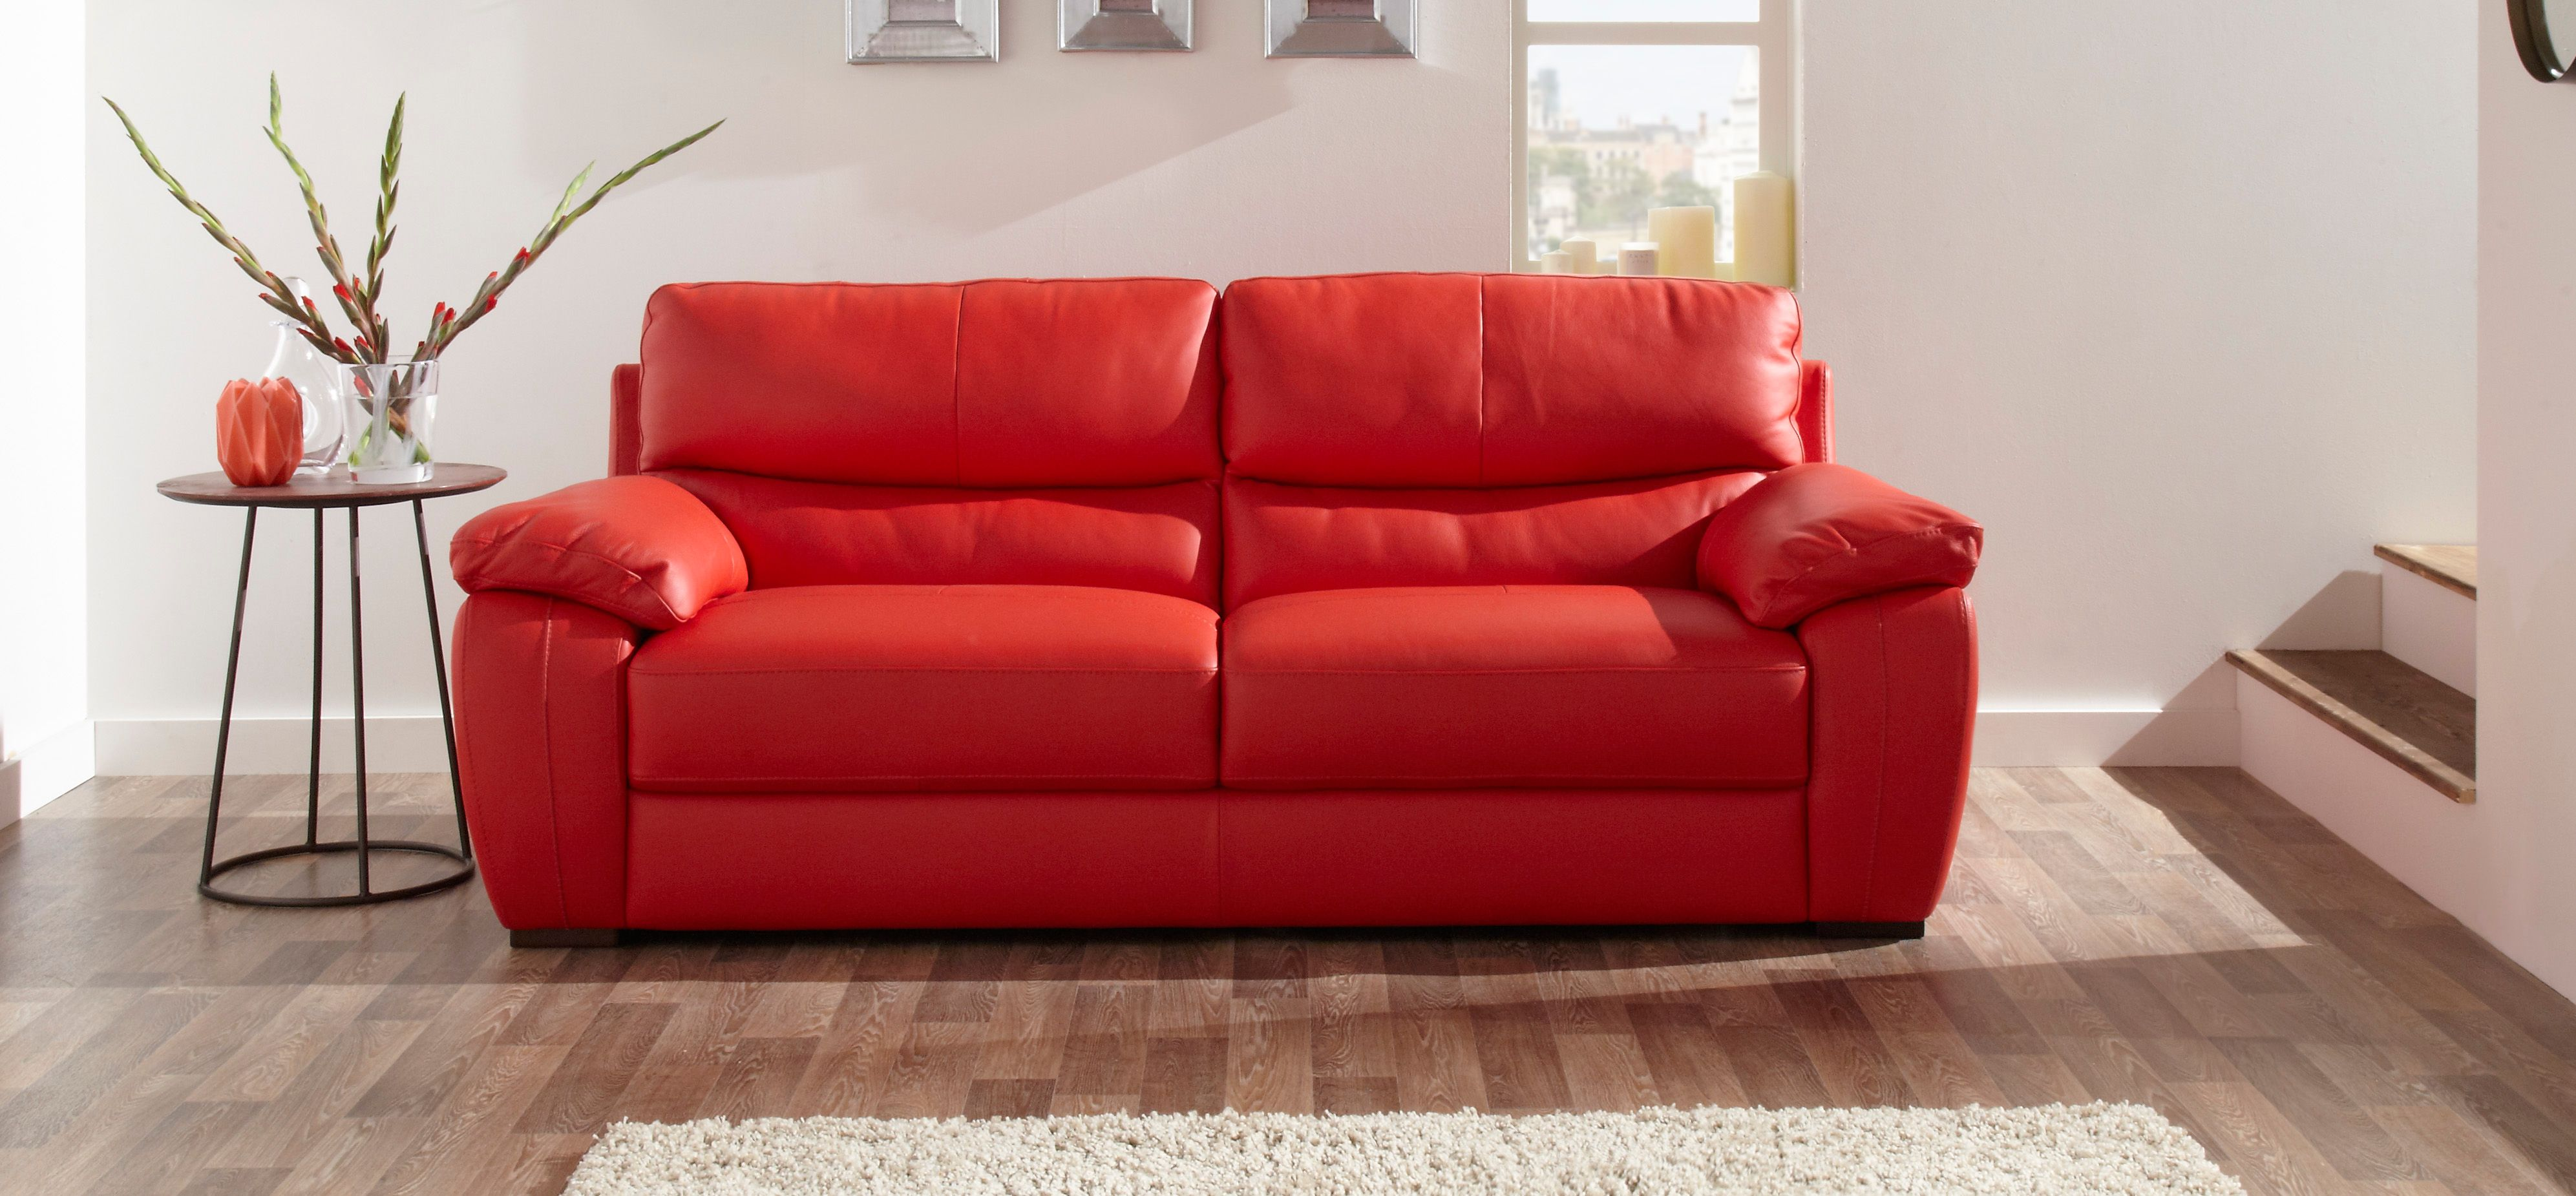 Sisi Italia Sofa Reviews Brokeasshome Com